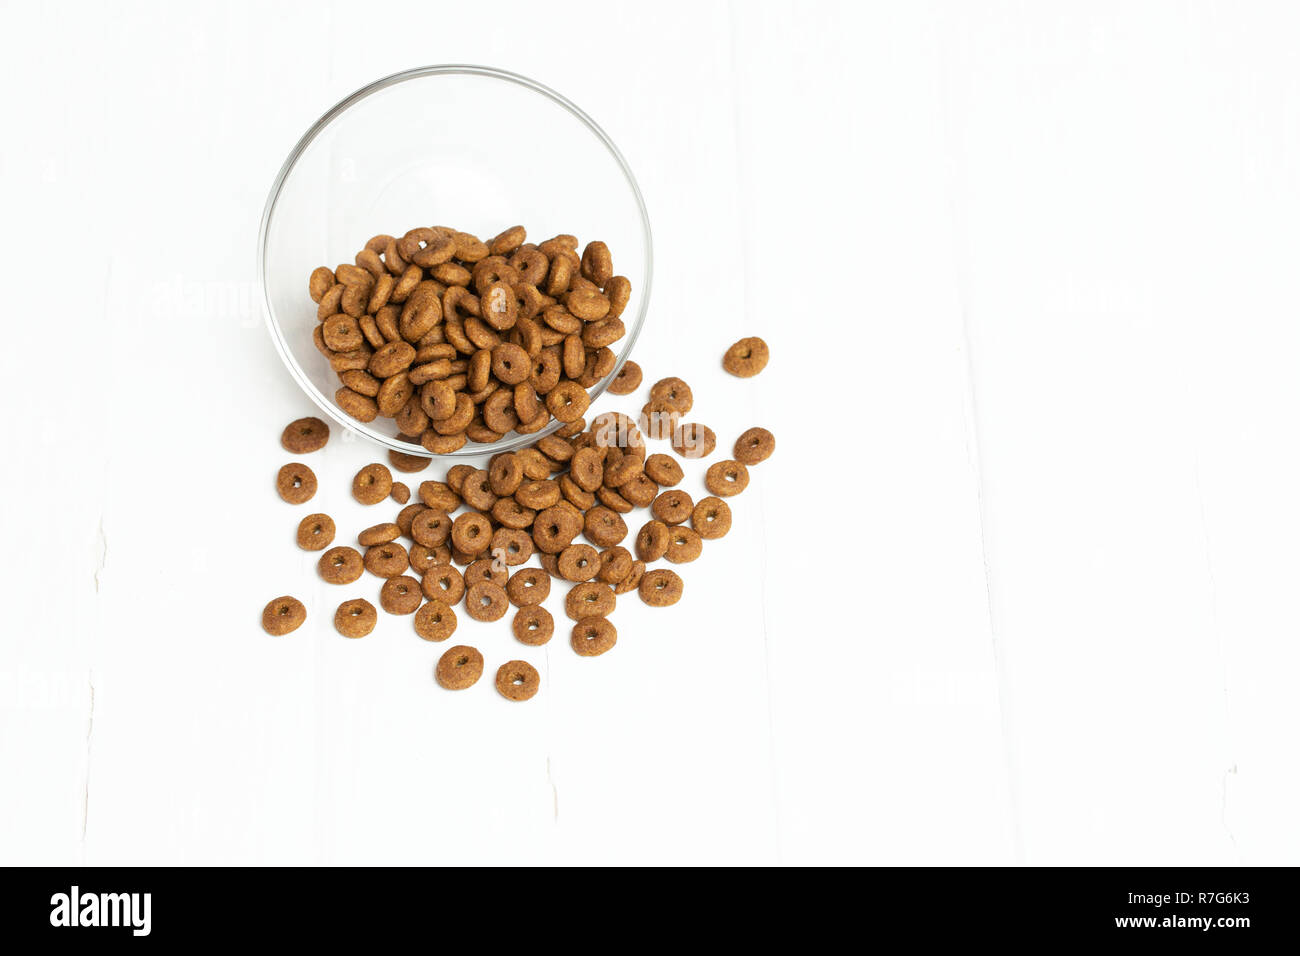 Dry cat food poured out of a transparent bowl on a white background Stock Photo